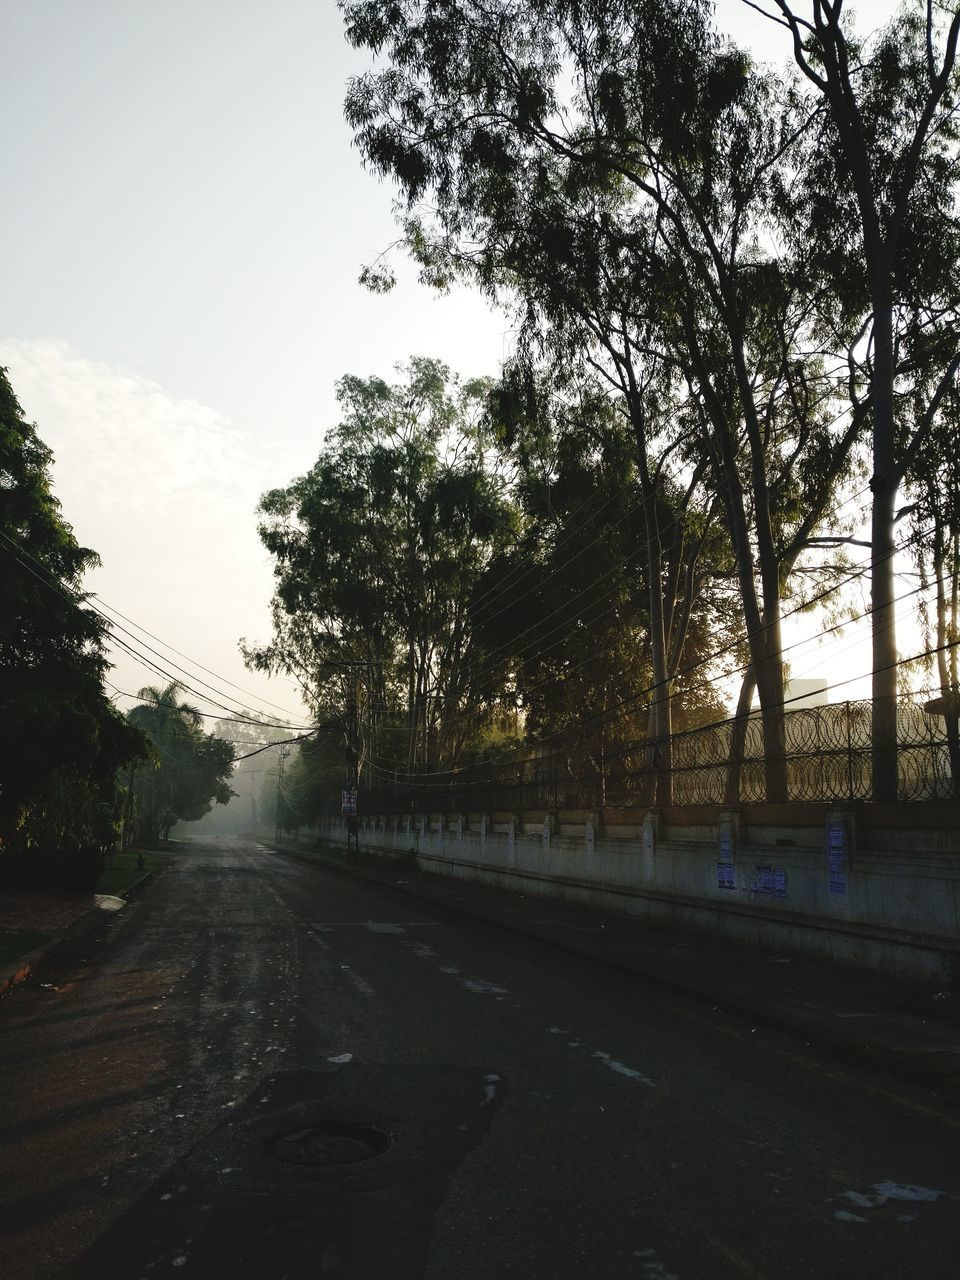 tree, road, transportation, sky, the way forward, no people, nature, street, outdoors, car, day, growth, scenics, beauty in nature, city